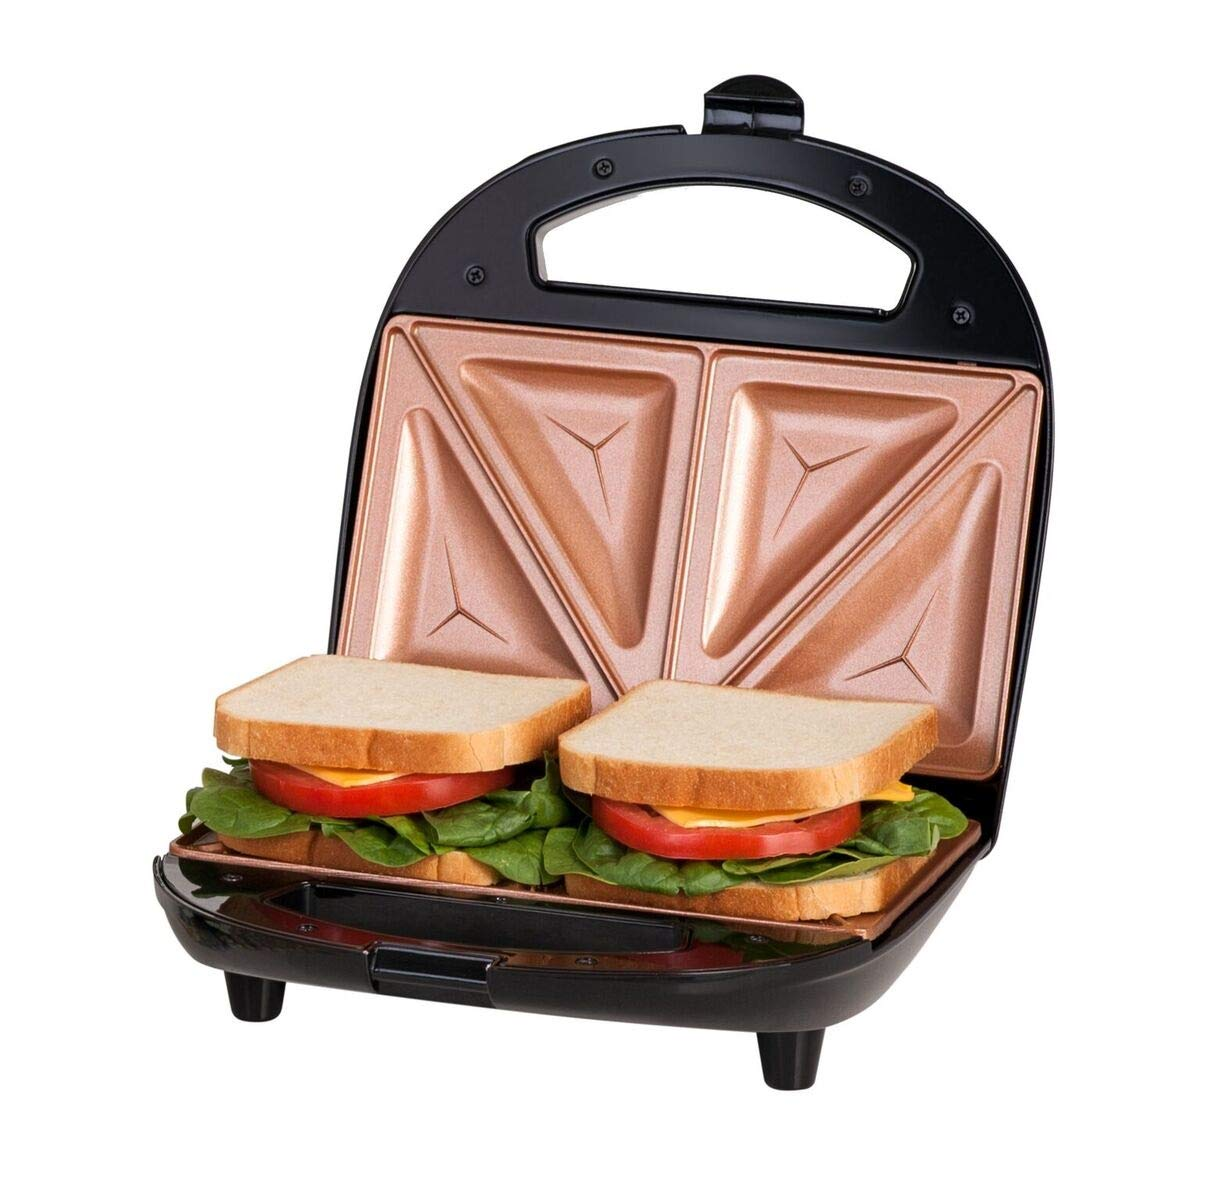 Gotham Steel Dual Electric Sandwich Maker and Panini Grill with Ultra Nonstick Copper Surface, Makes 2 Sandwiches in Minutes – Perfect Every Time, with Virtually No Clean Up